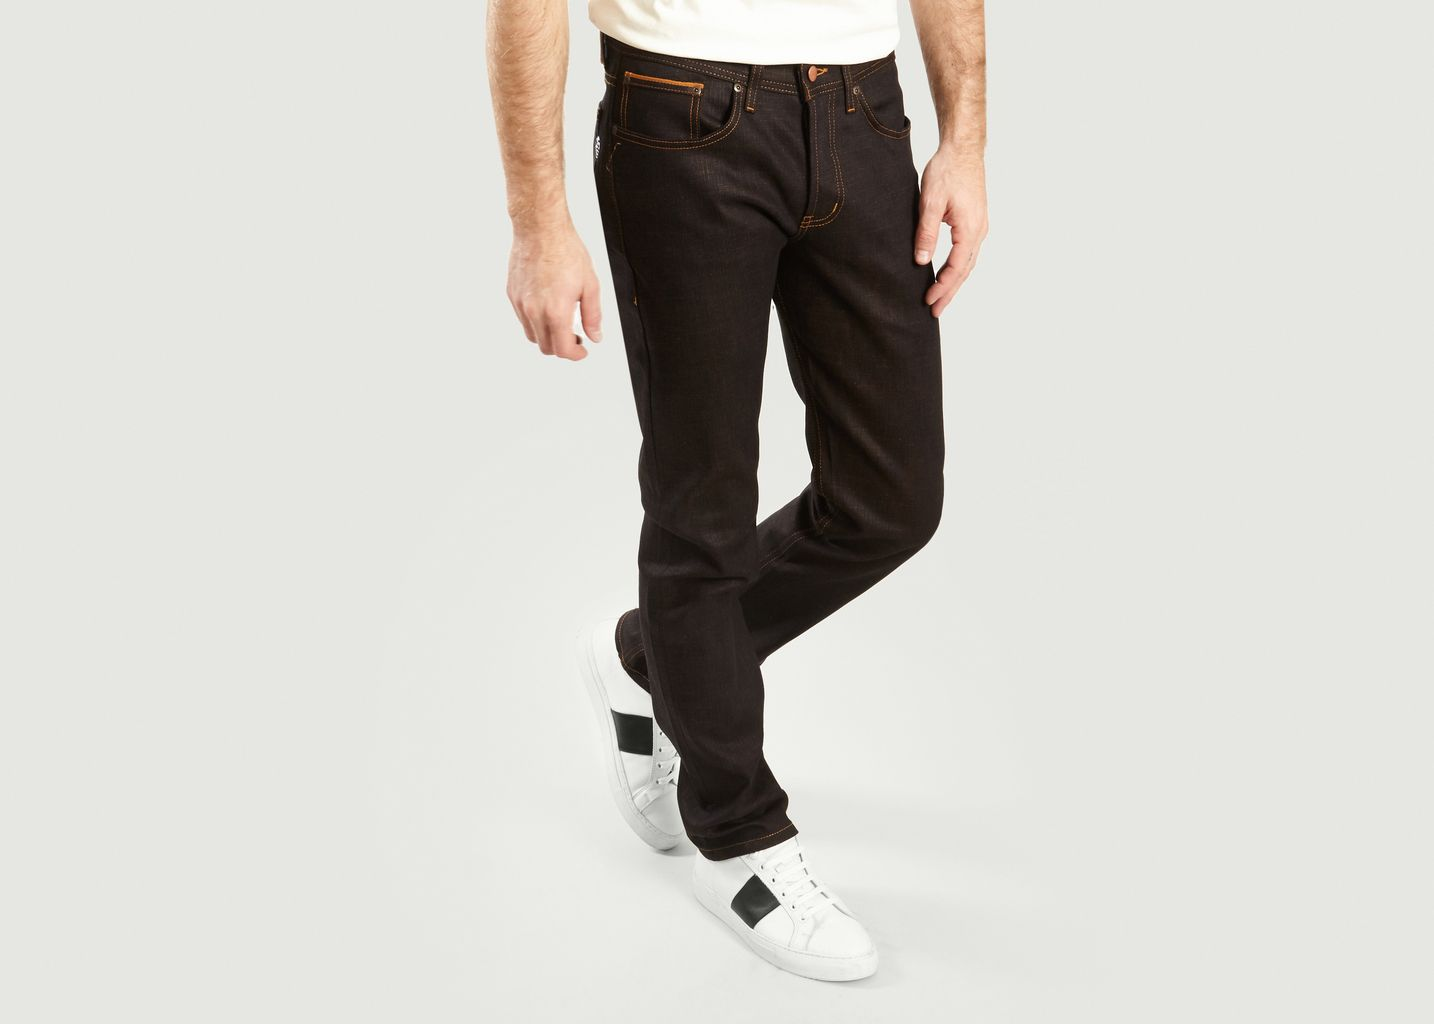 Jean Tapered Goku Super Sayian Selvedge Weird Guy  - Naked and Famous